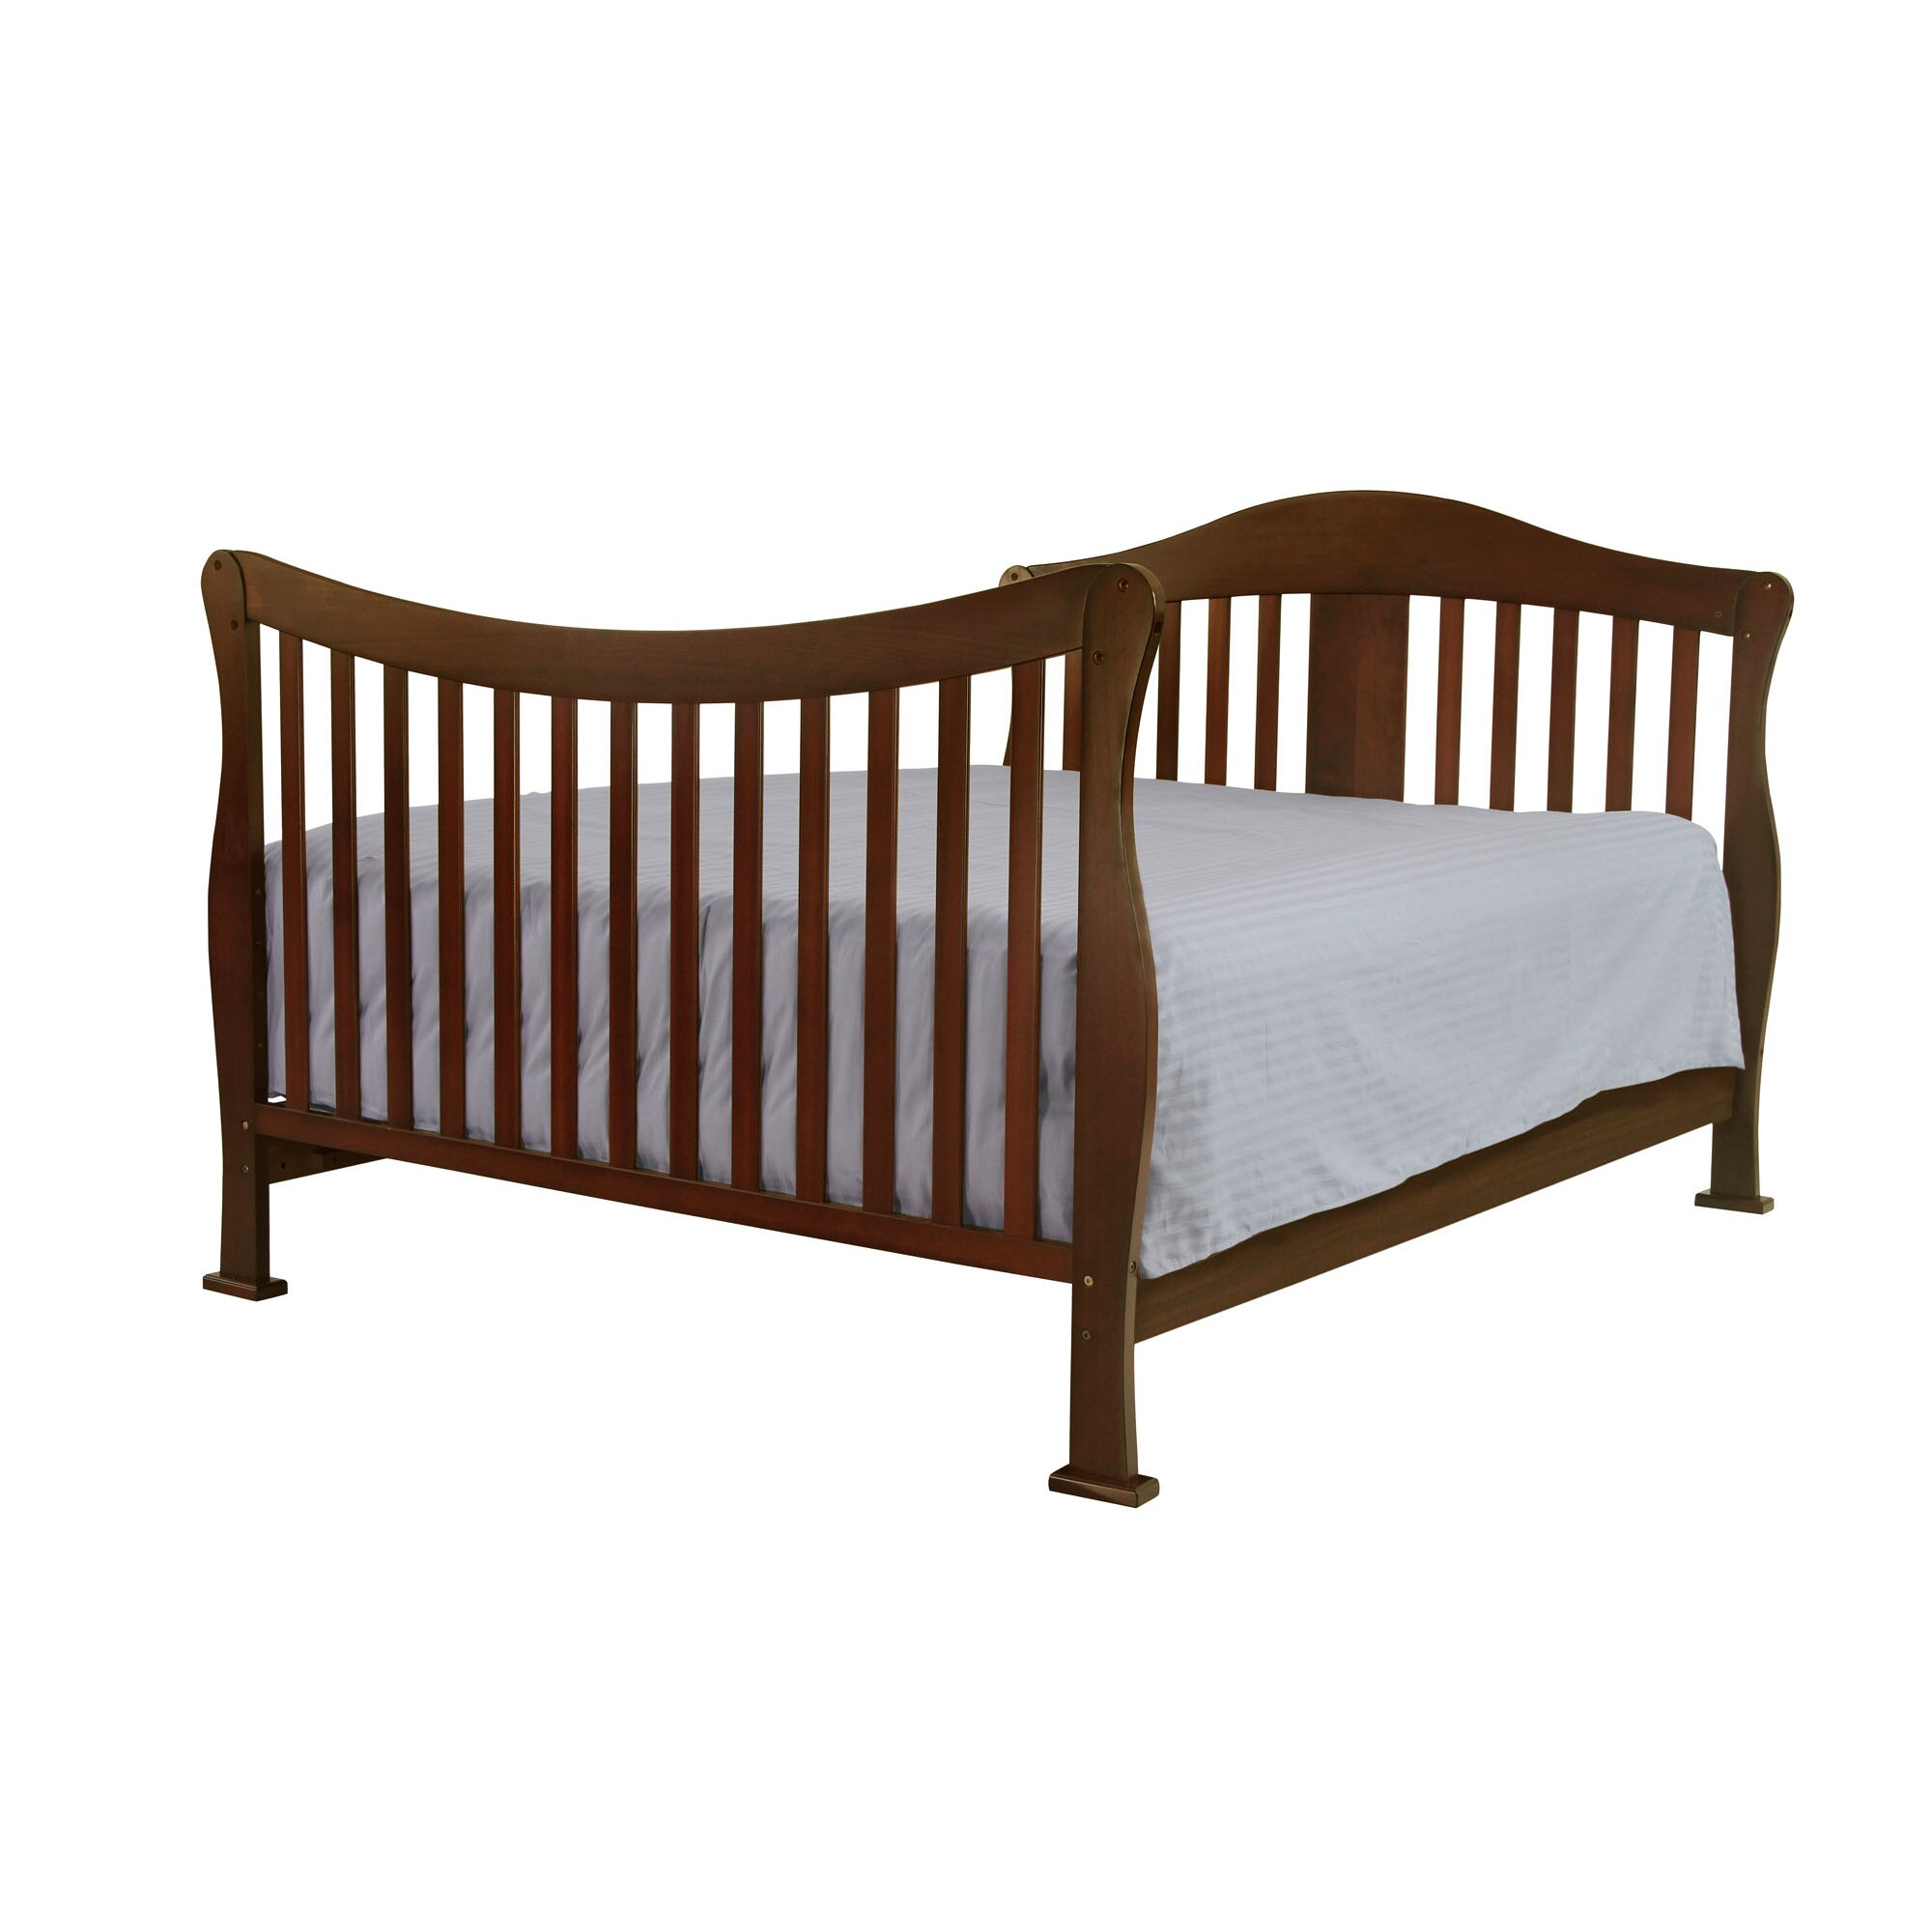 Cribs 4 In 1 Convertible Set Child Craft Stanford